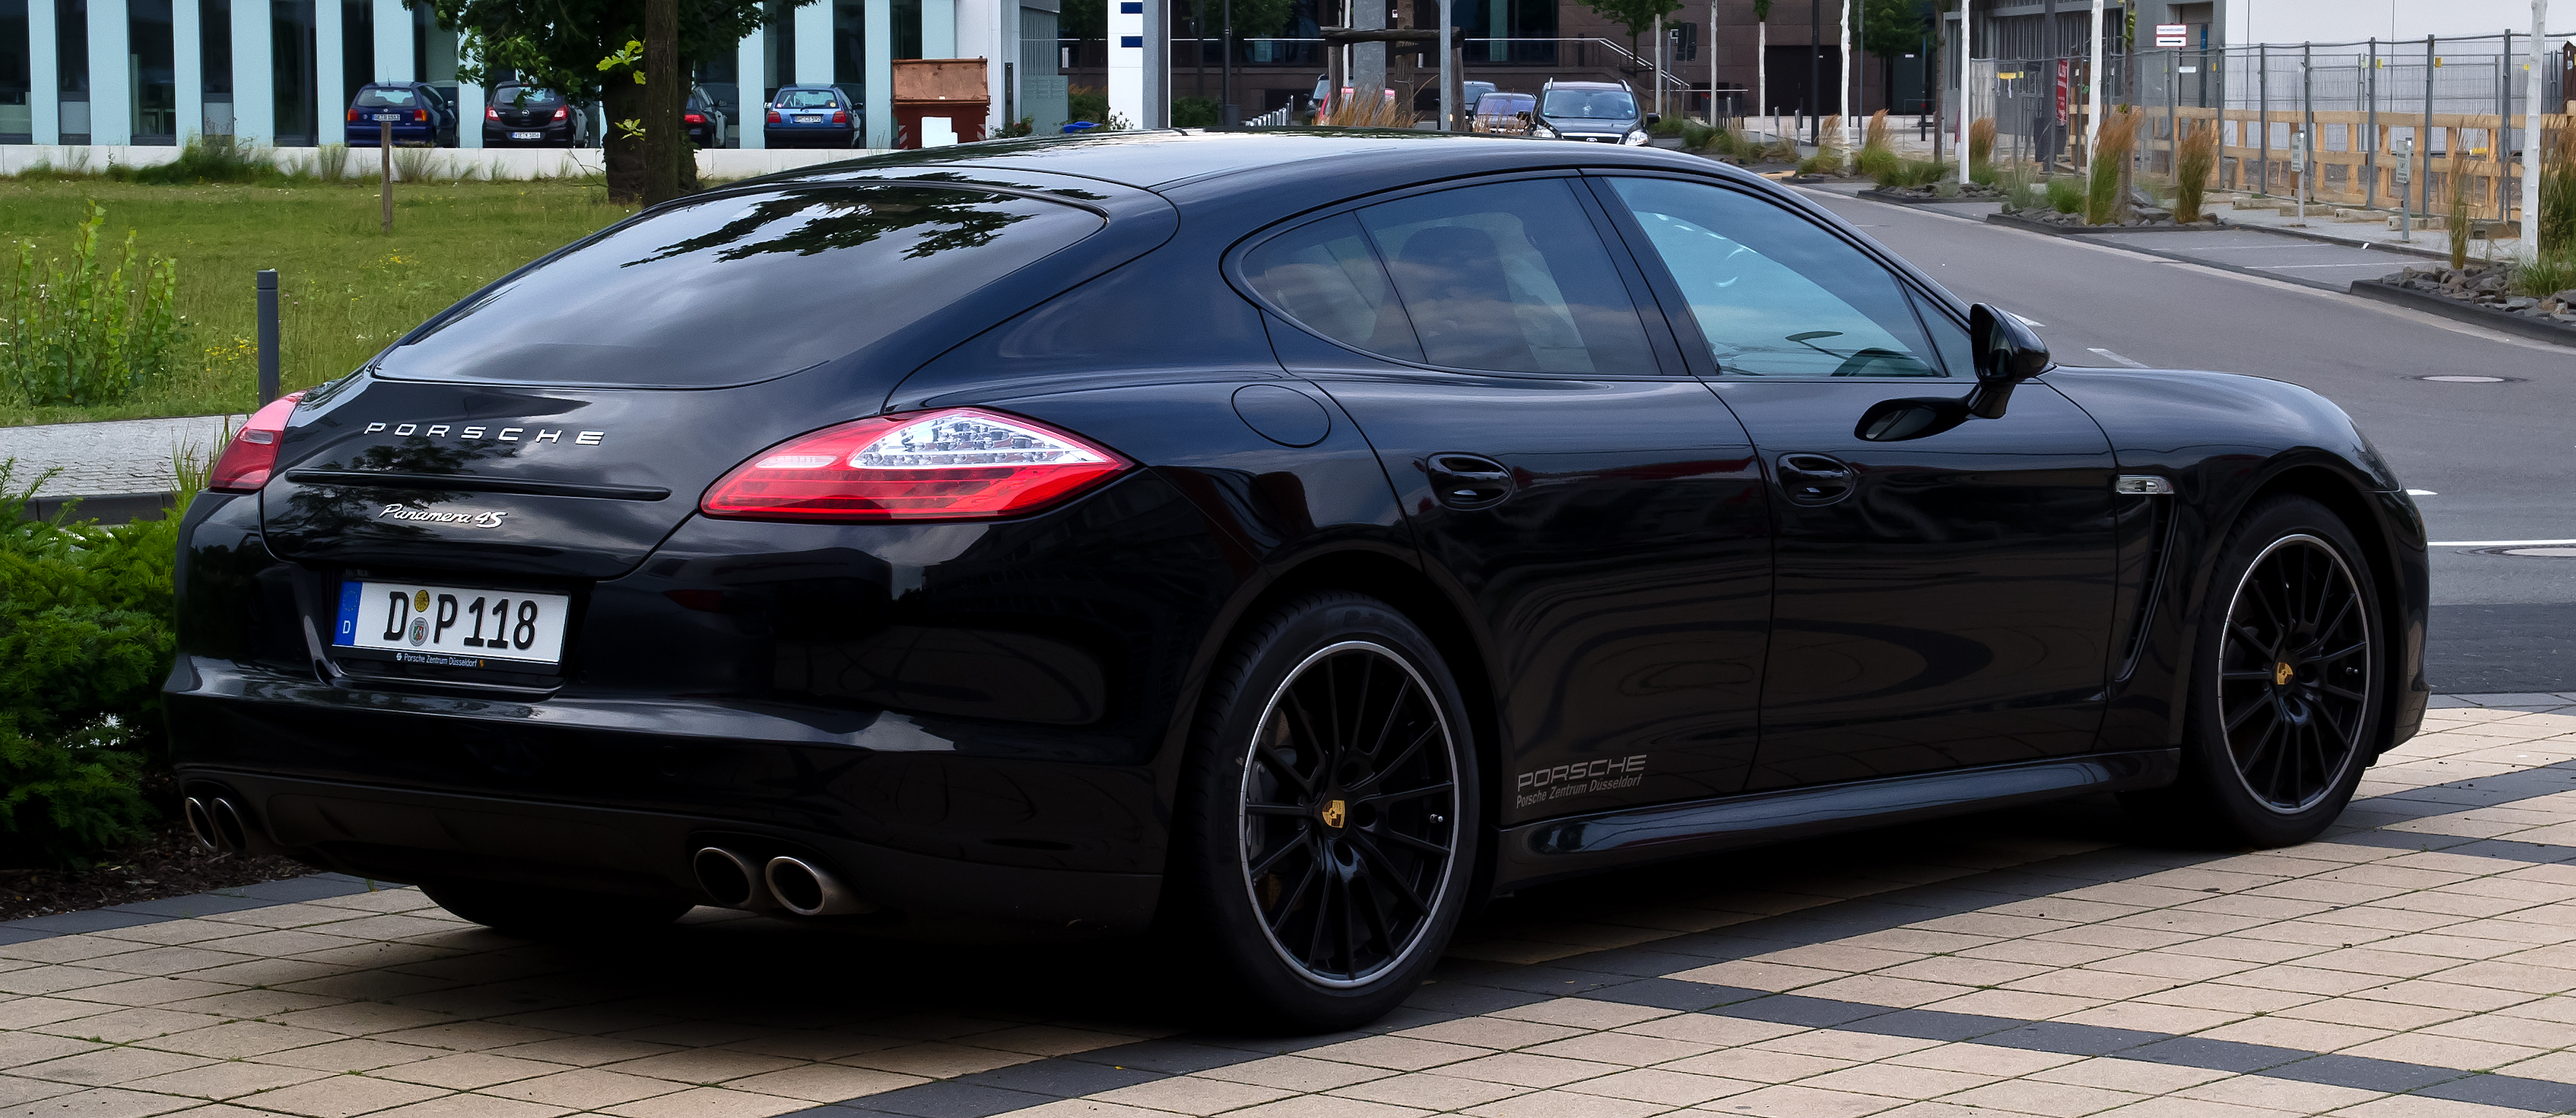 Porsche  Turbo S Package Car